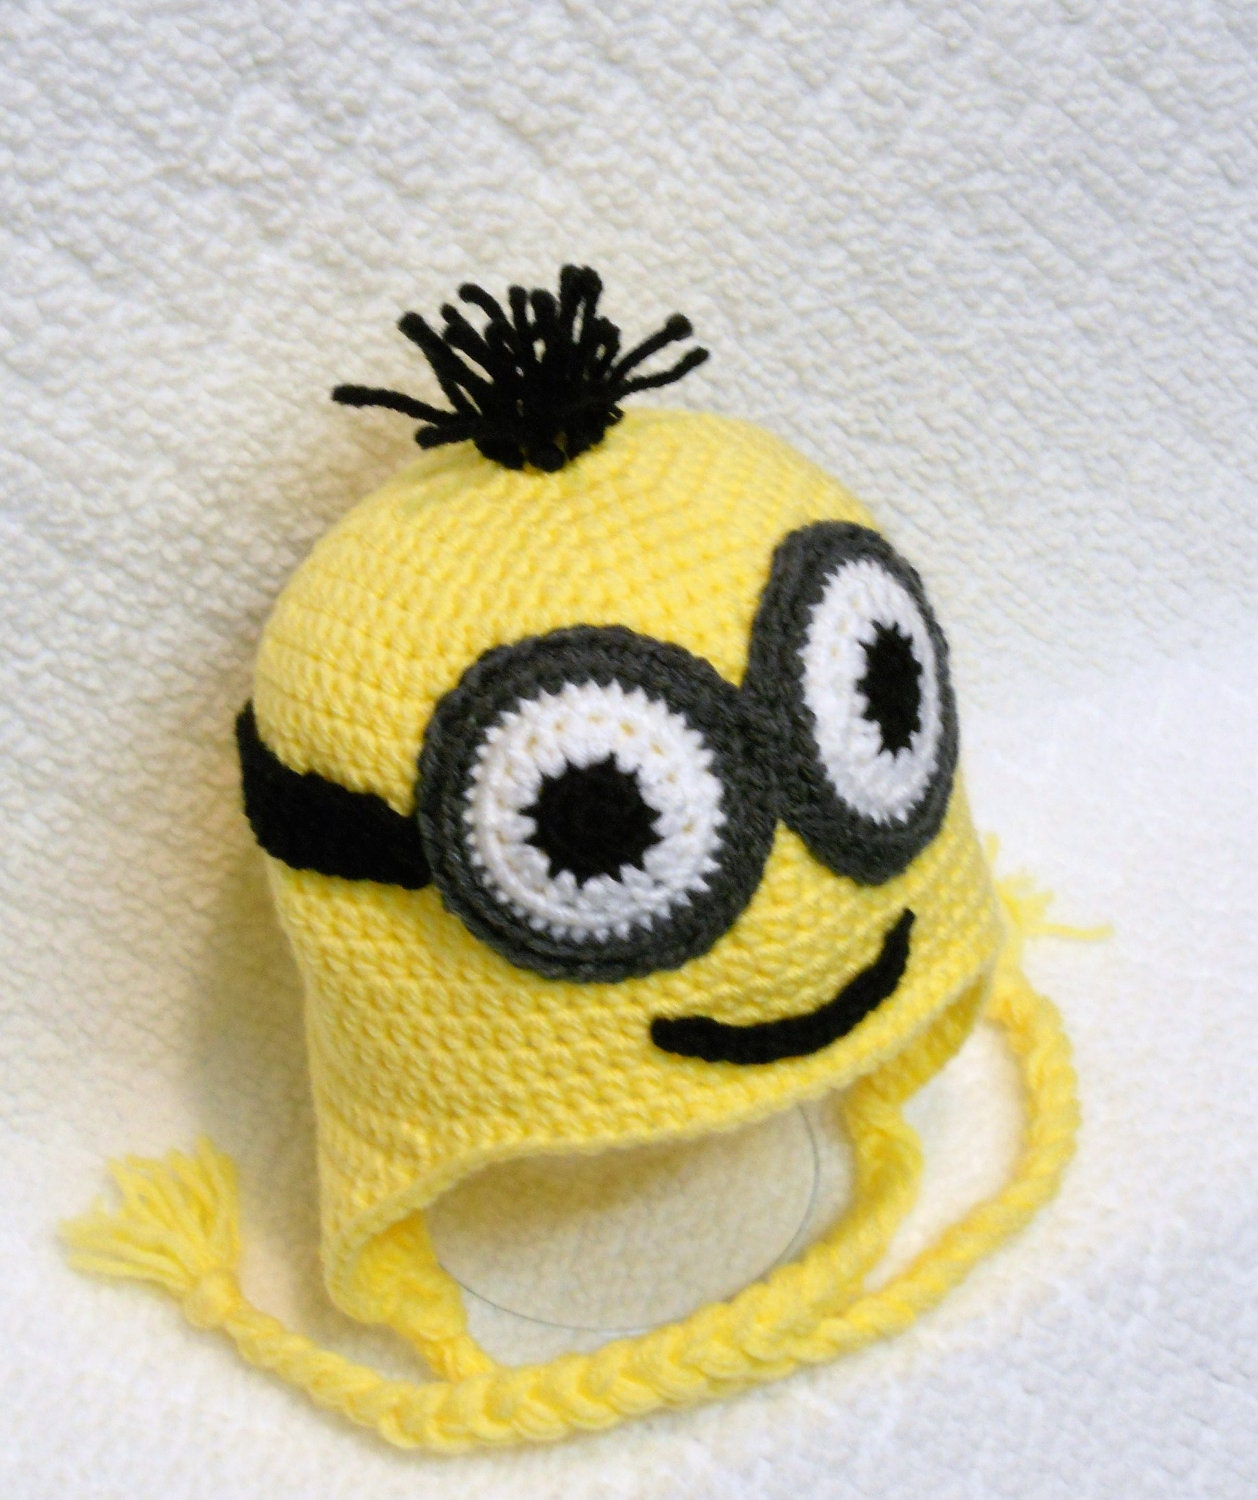 Yellow Minion DIY Hair, Hats and Makeup Ideas Turning yourself into a silly yellow minion requires a minion costume and goggles, along with a way to turn your face and head yellow using yellow makeup and some way to do minion hair to complete the costume.